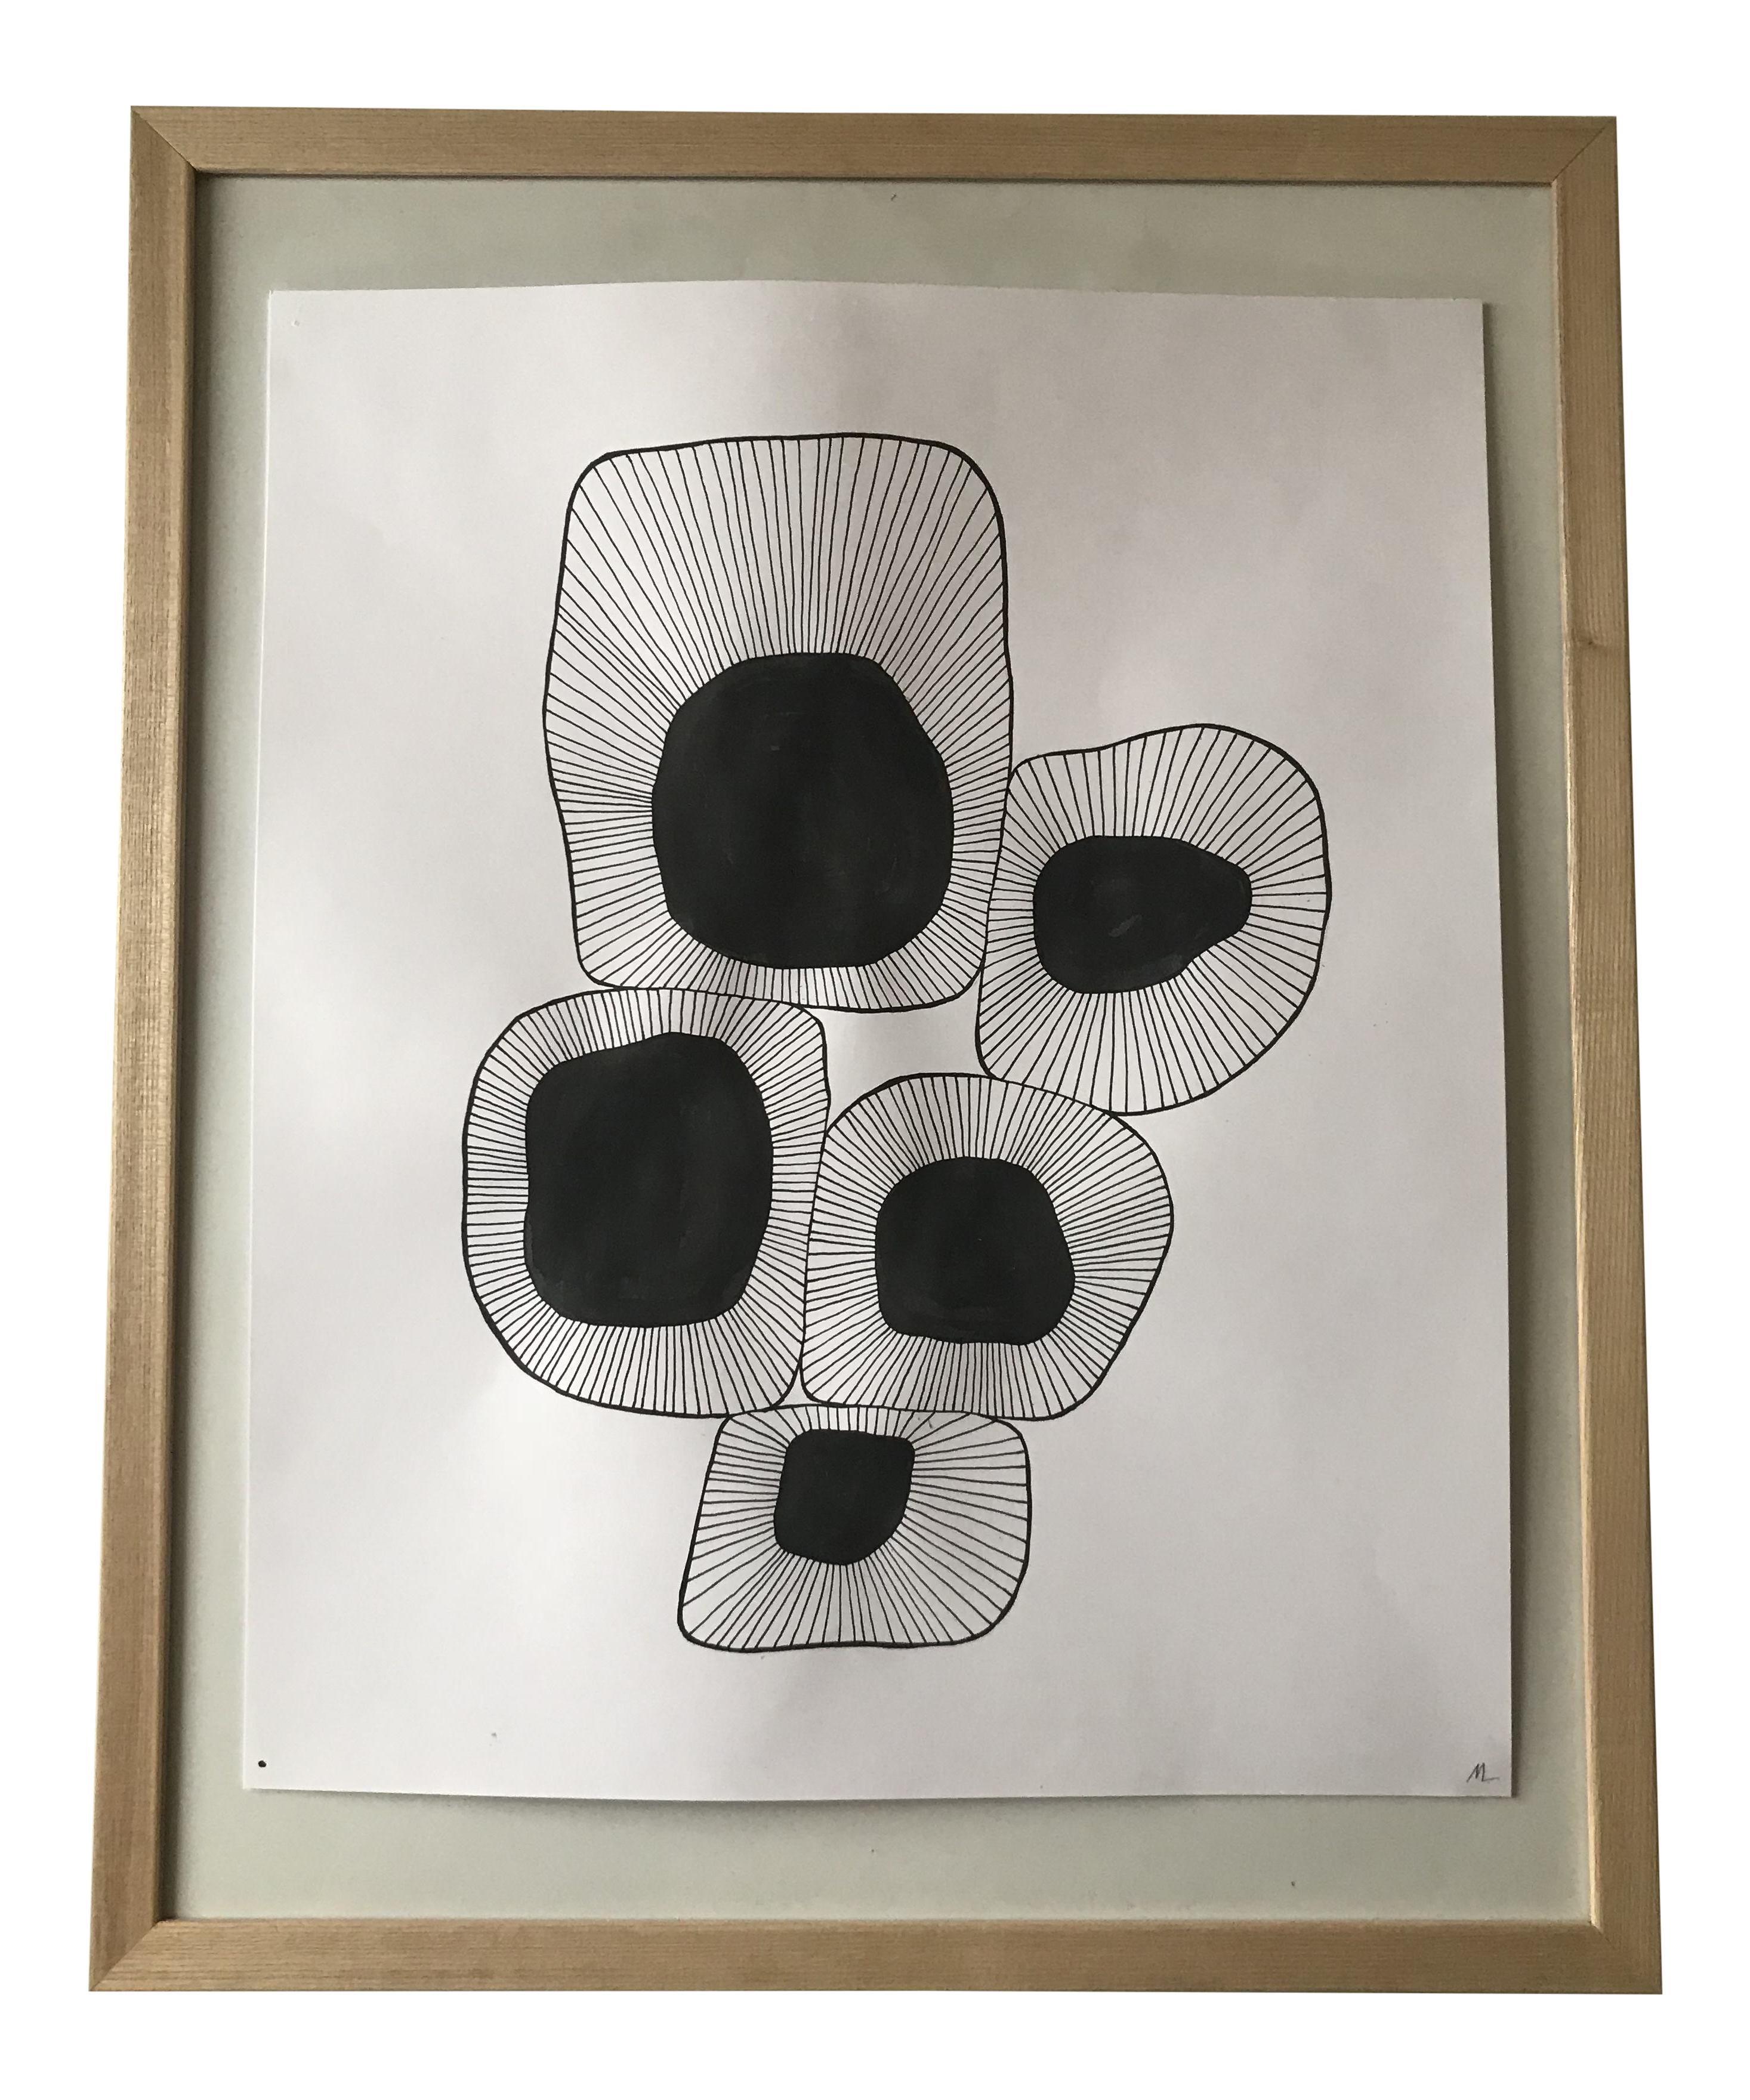 White drawing ink. Graphic black organic shapes